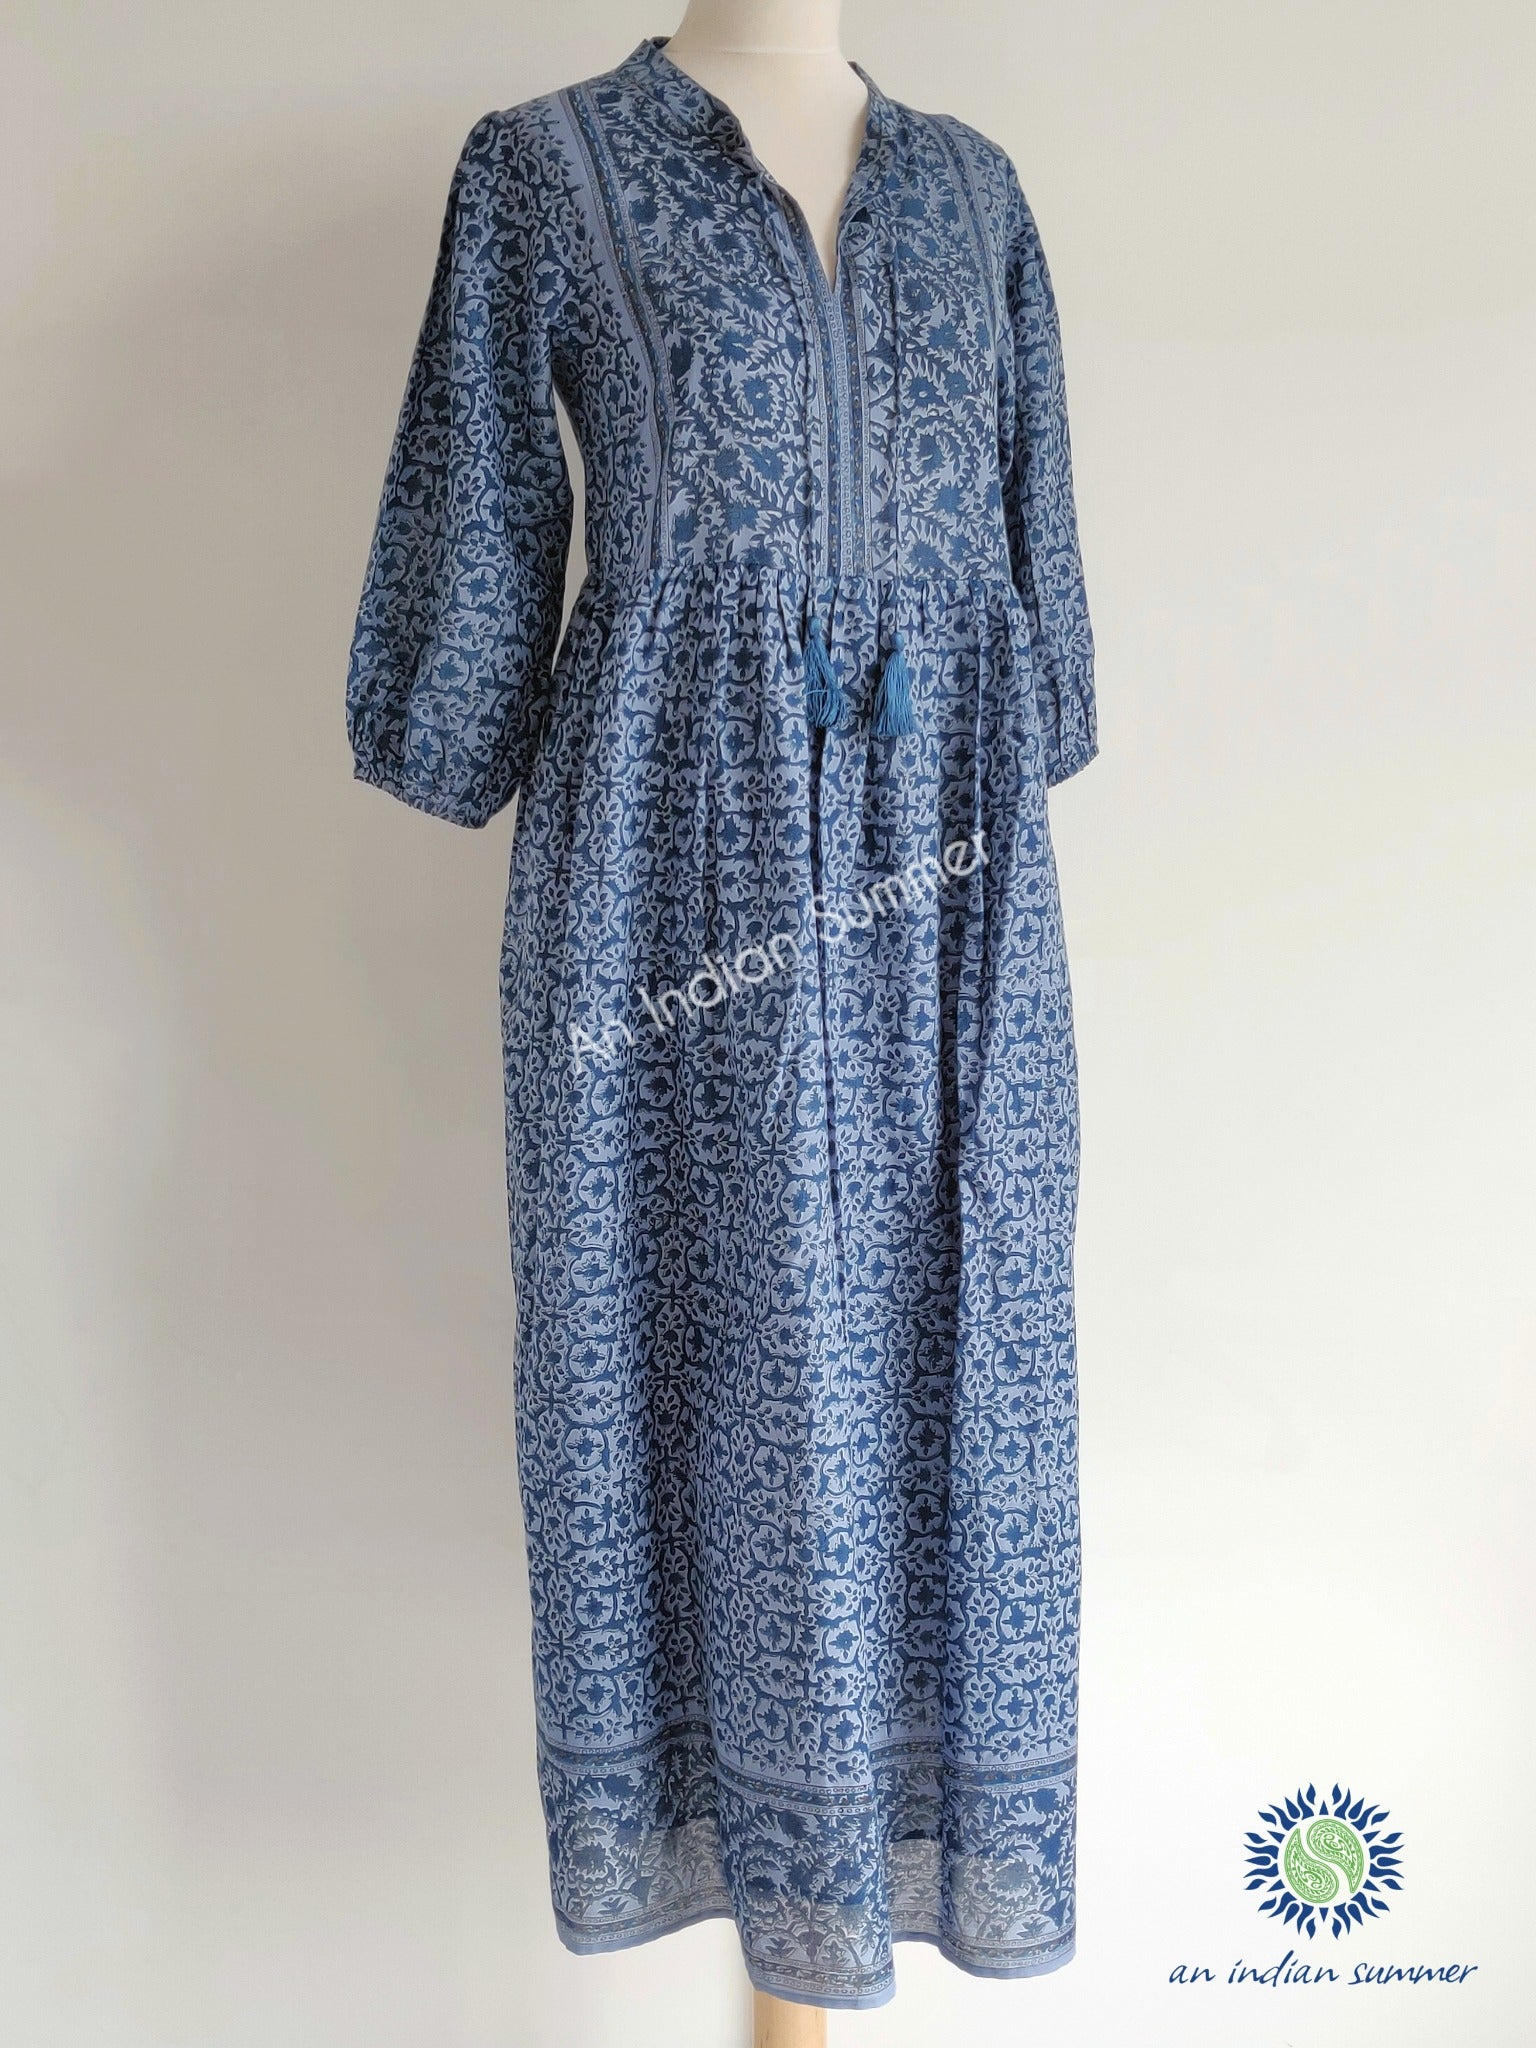 Laura Dress | Blue | Floral Print | Cotton Voile | An Indian Summer | Seasonless Timeless Sustainable Ethical Authentic Artisan Conscious Clothing Lifestyle Brand